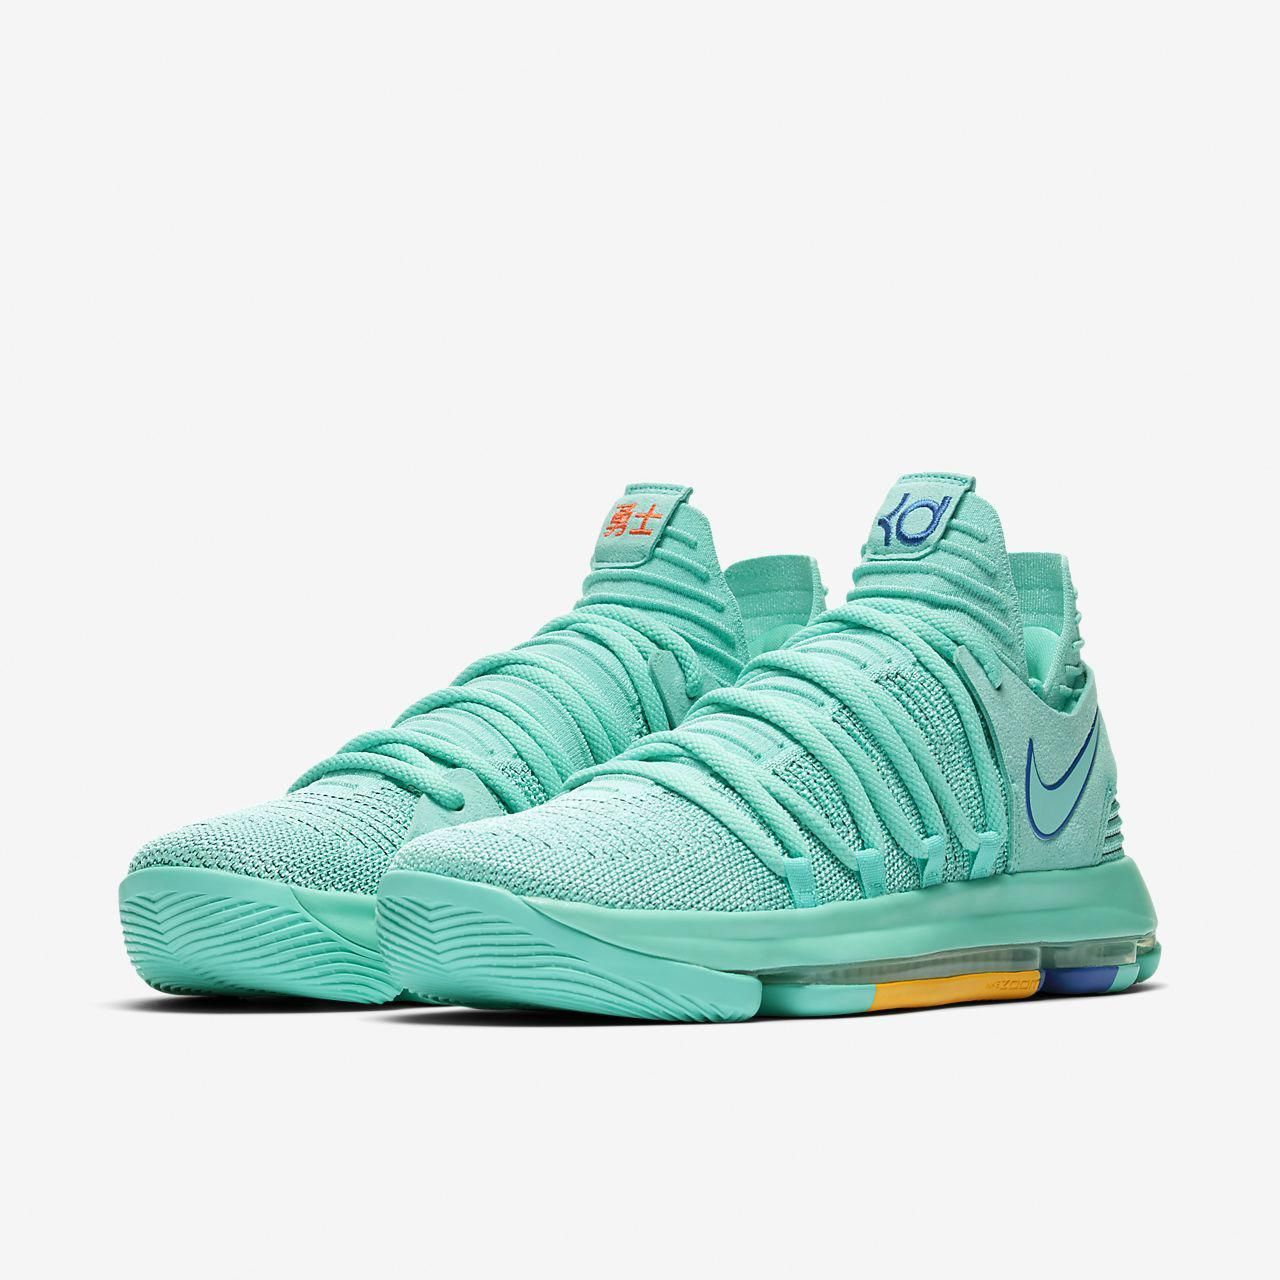 Nike Kd X Hyper Turquoise Basketball Shoes Jump St Australia Womens Basketball Shoes Nike Basketball Shoes Basketball Shoes For Men